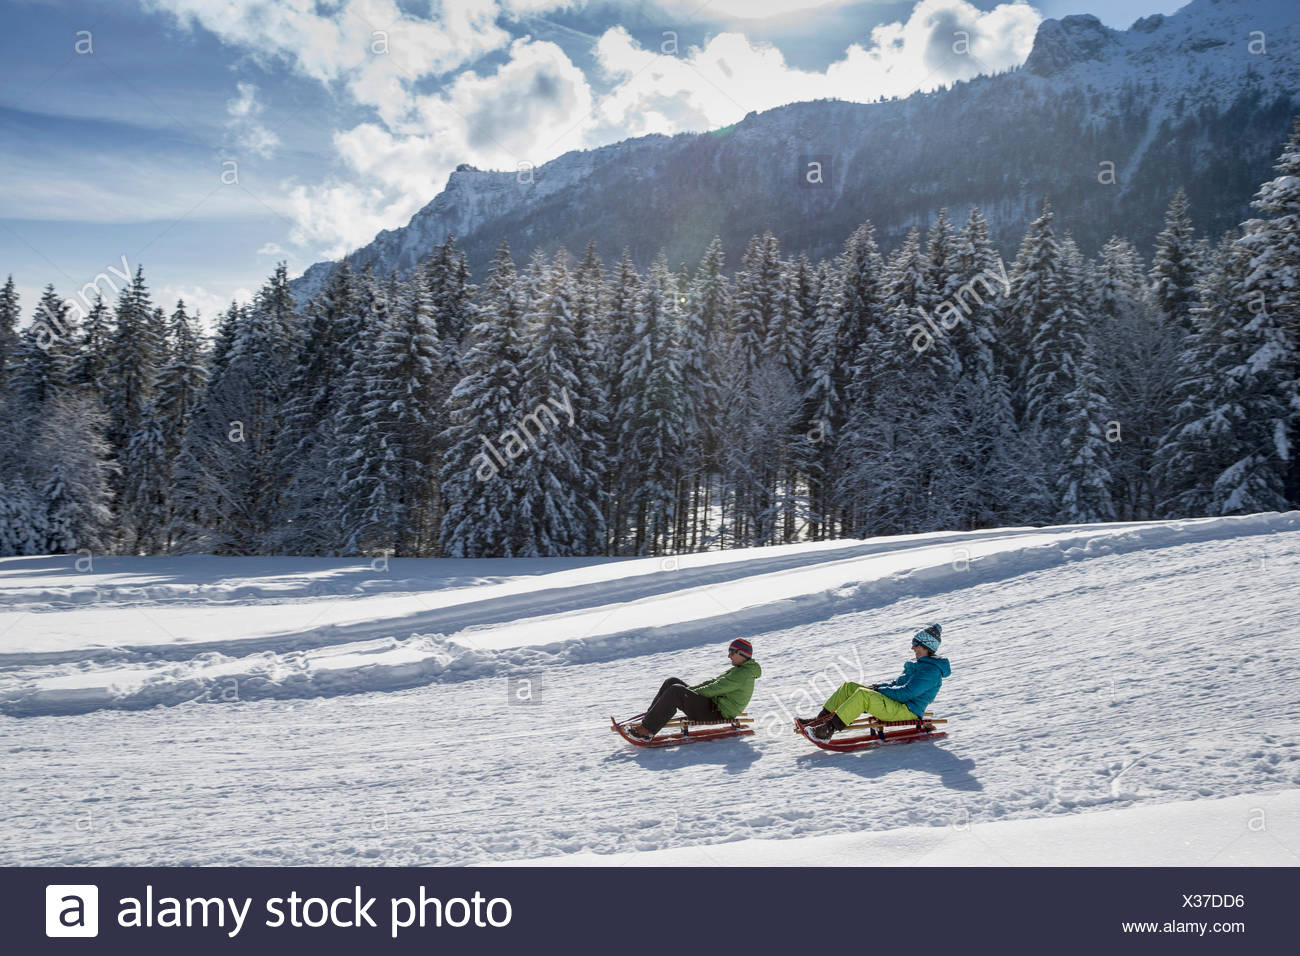 Germany, Bavaria, Inzell, couple on sledges in snow-covered landscape Stock Photo